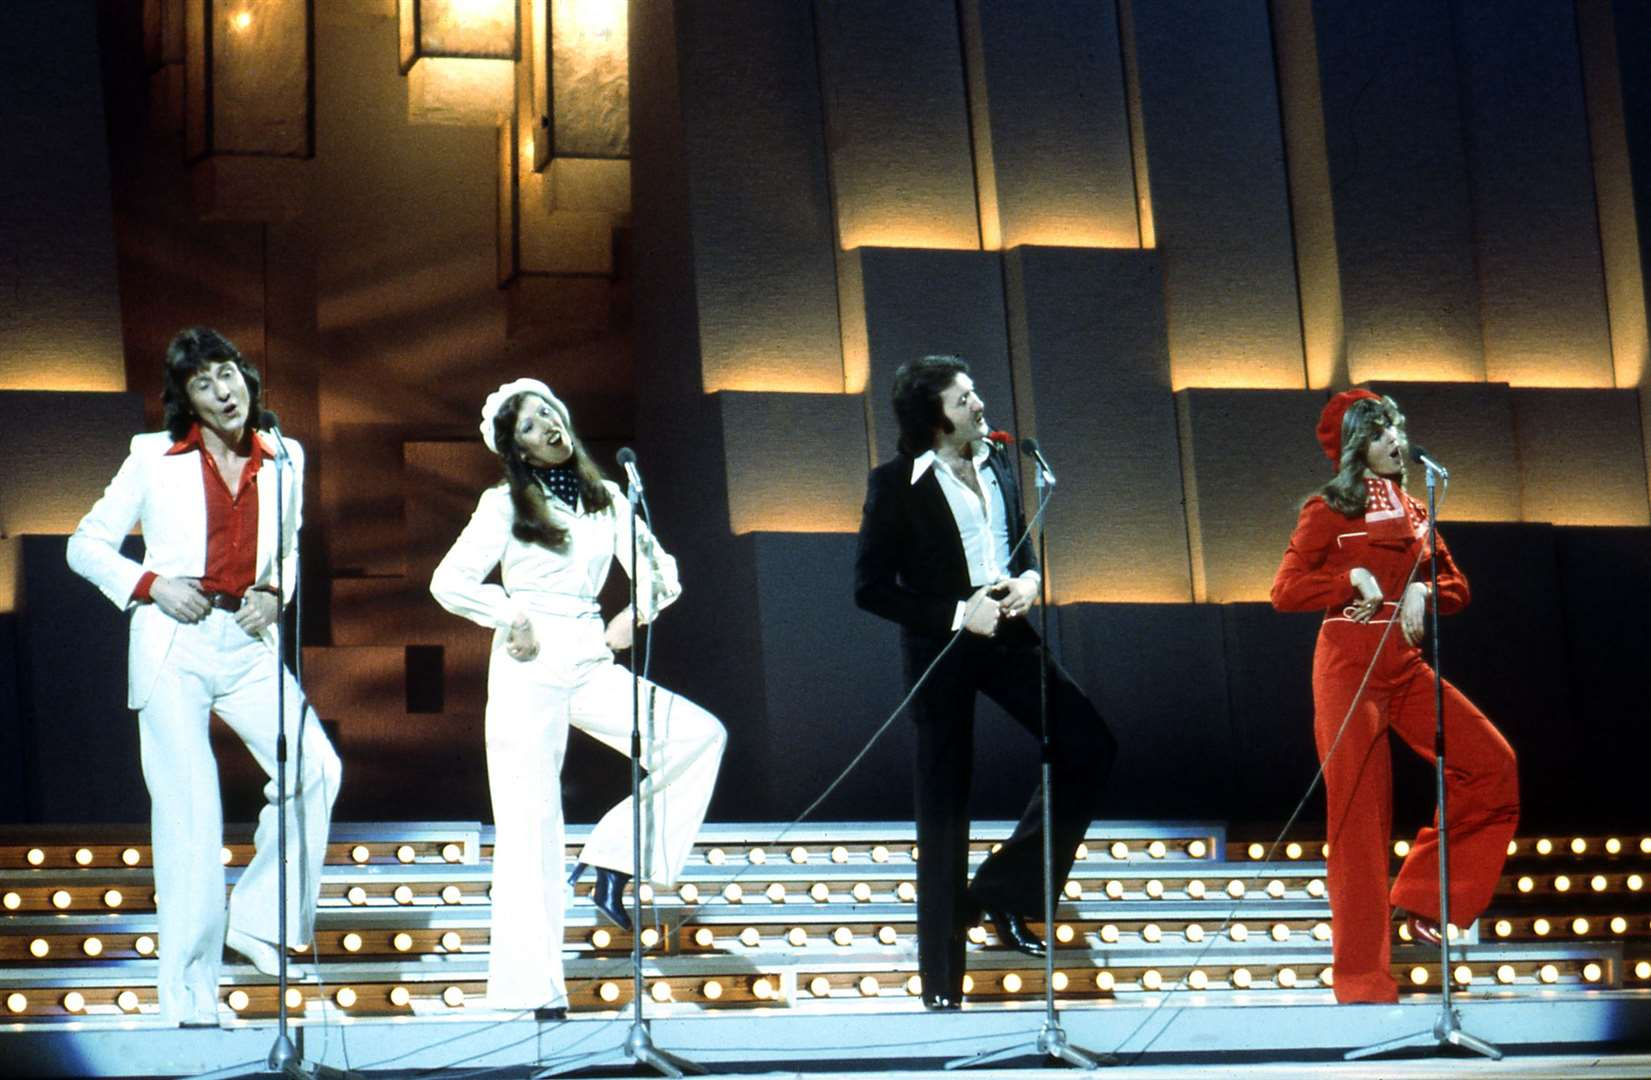 Is it time for this? The Brotherhood of Man at the Eurovision Song Contest